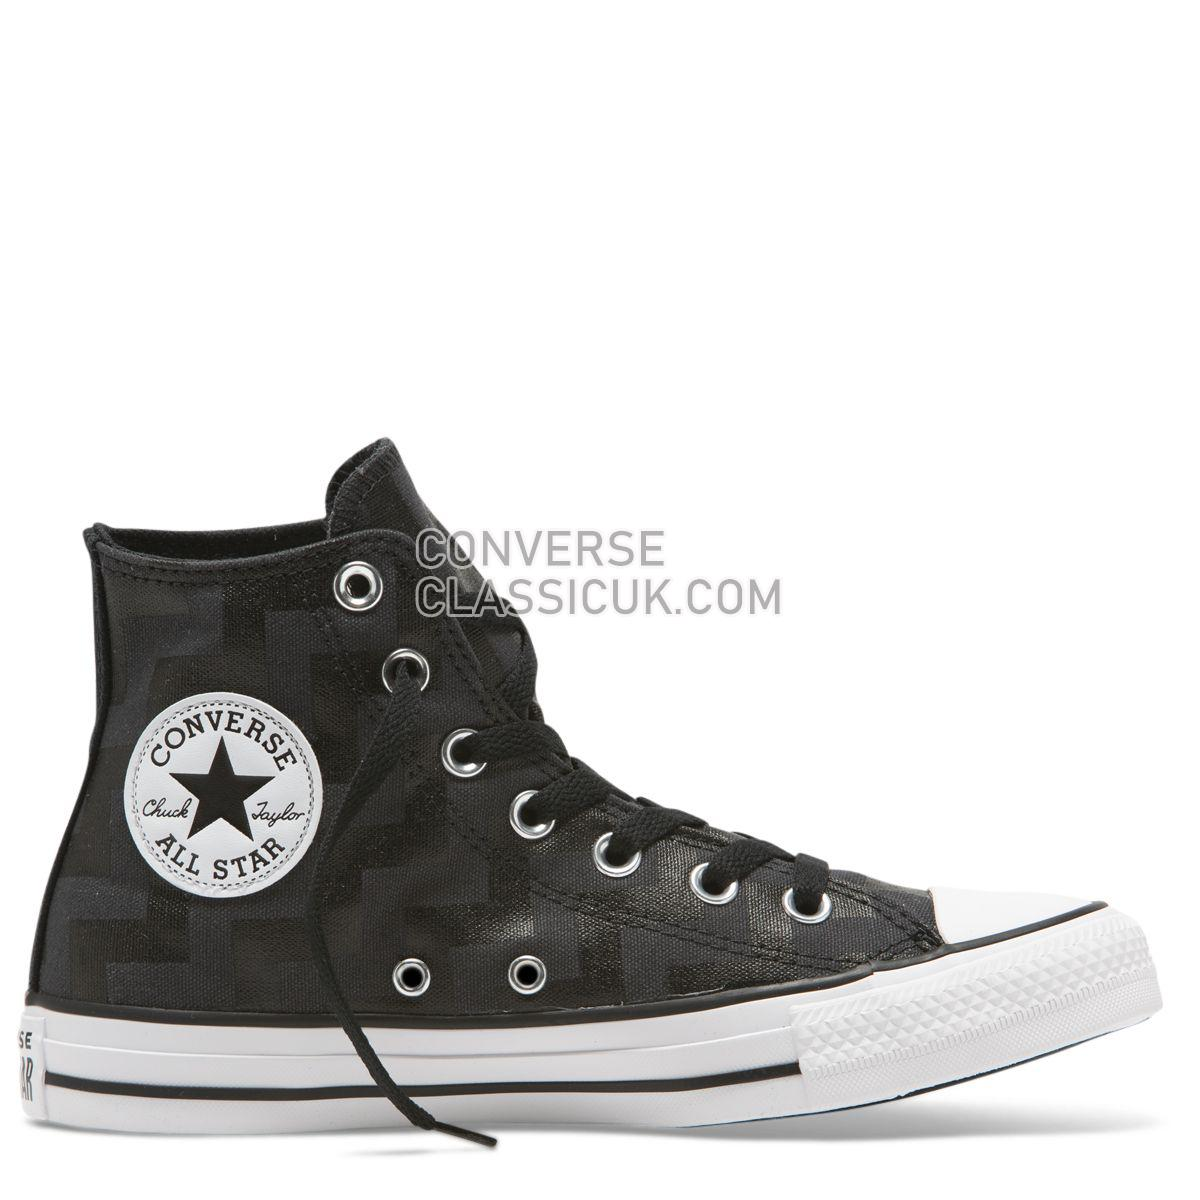 Converse Chuck Taylor All Star Glam Dunk High Top Black Womens 565212 Black/Almost Black/White Shoes